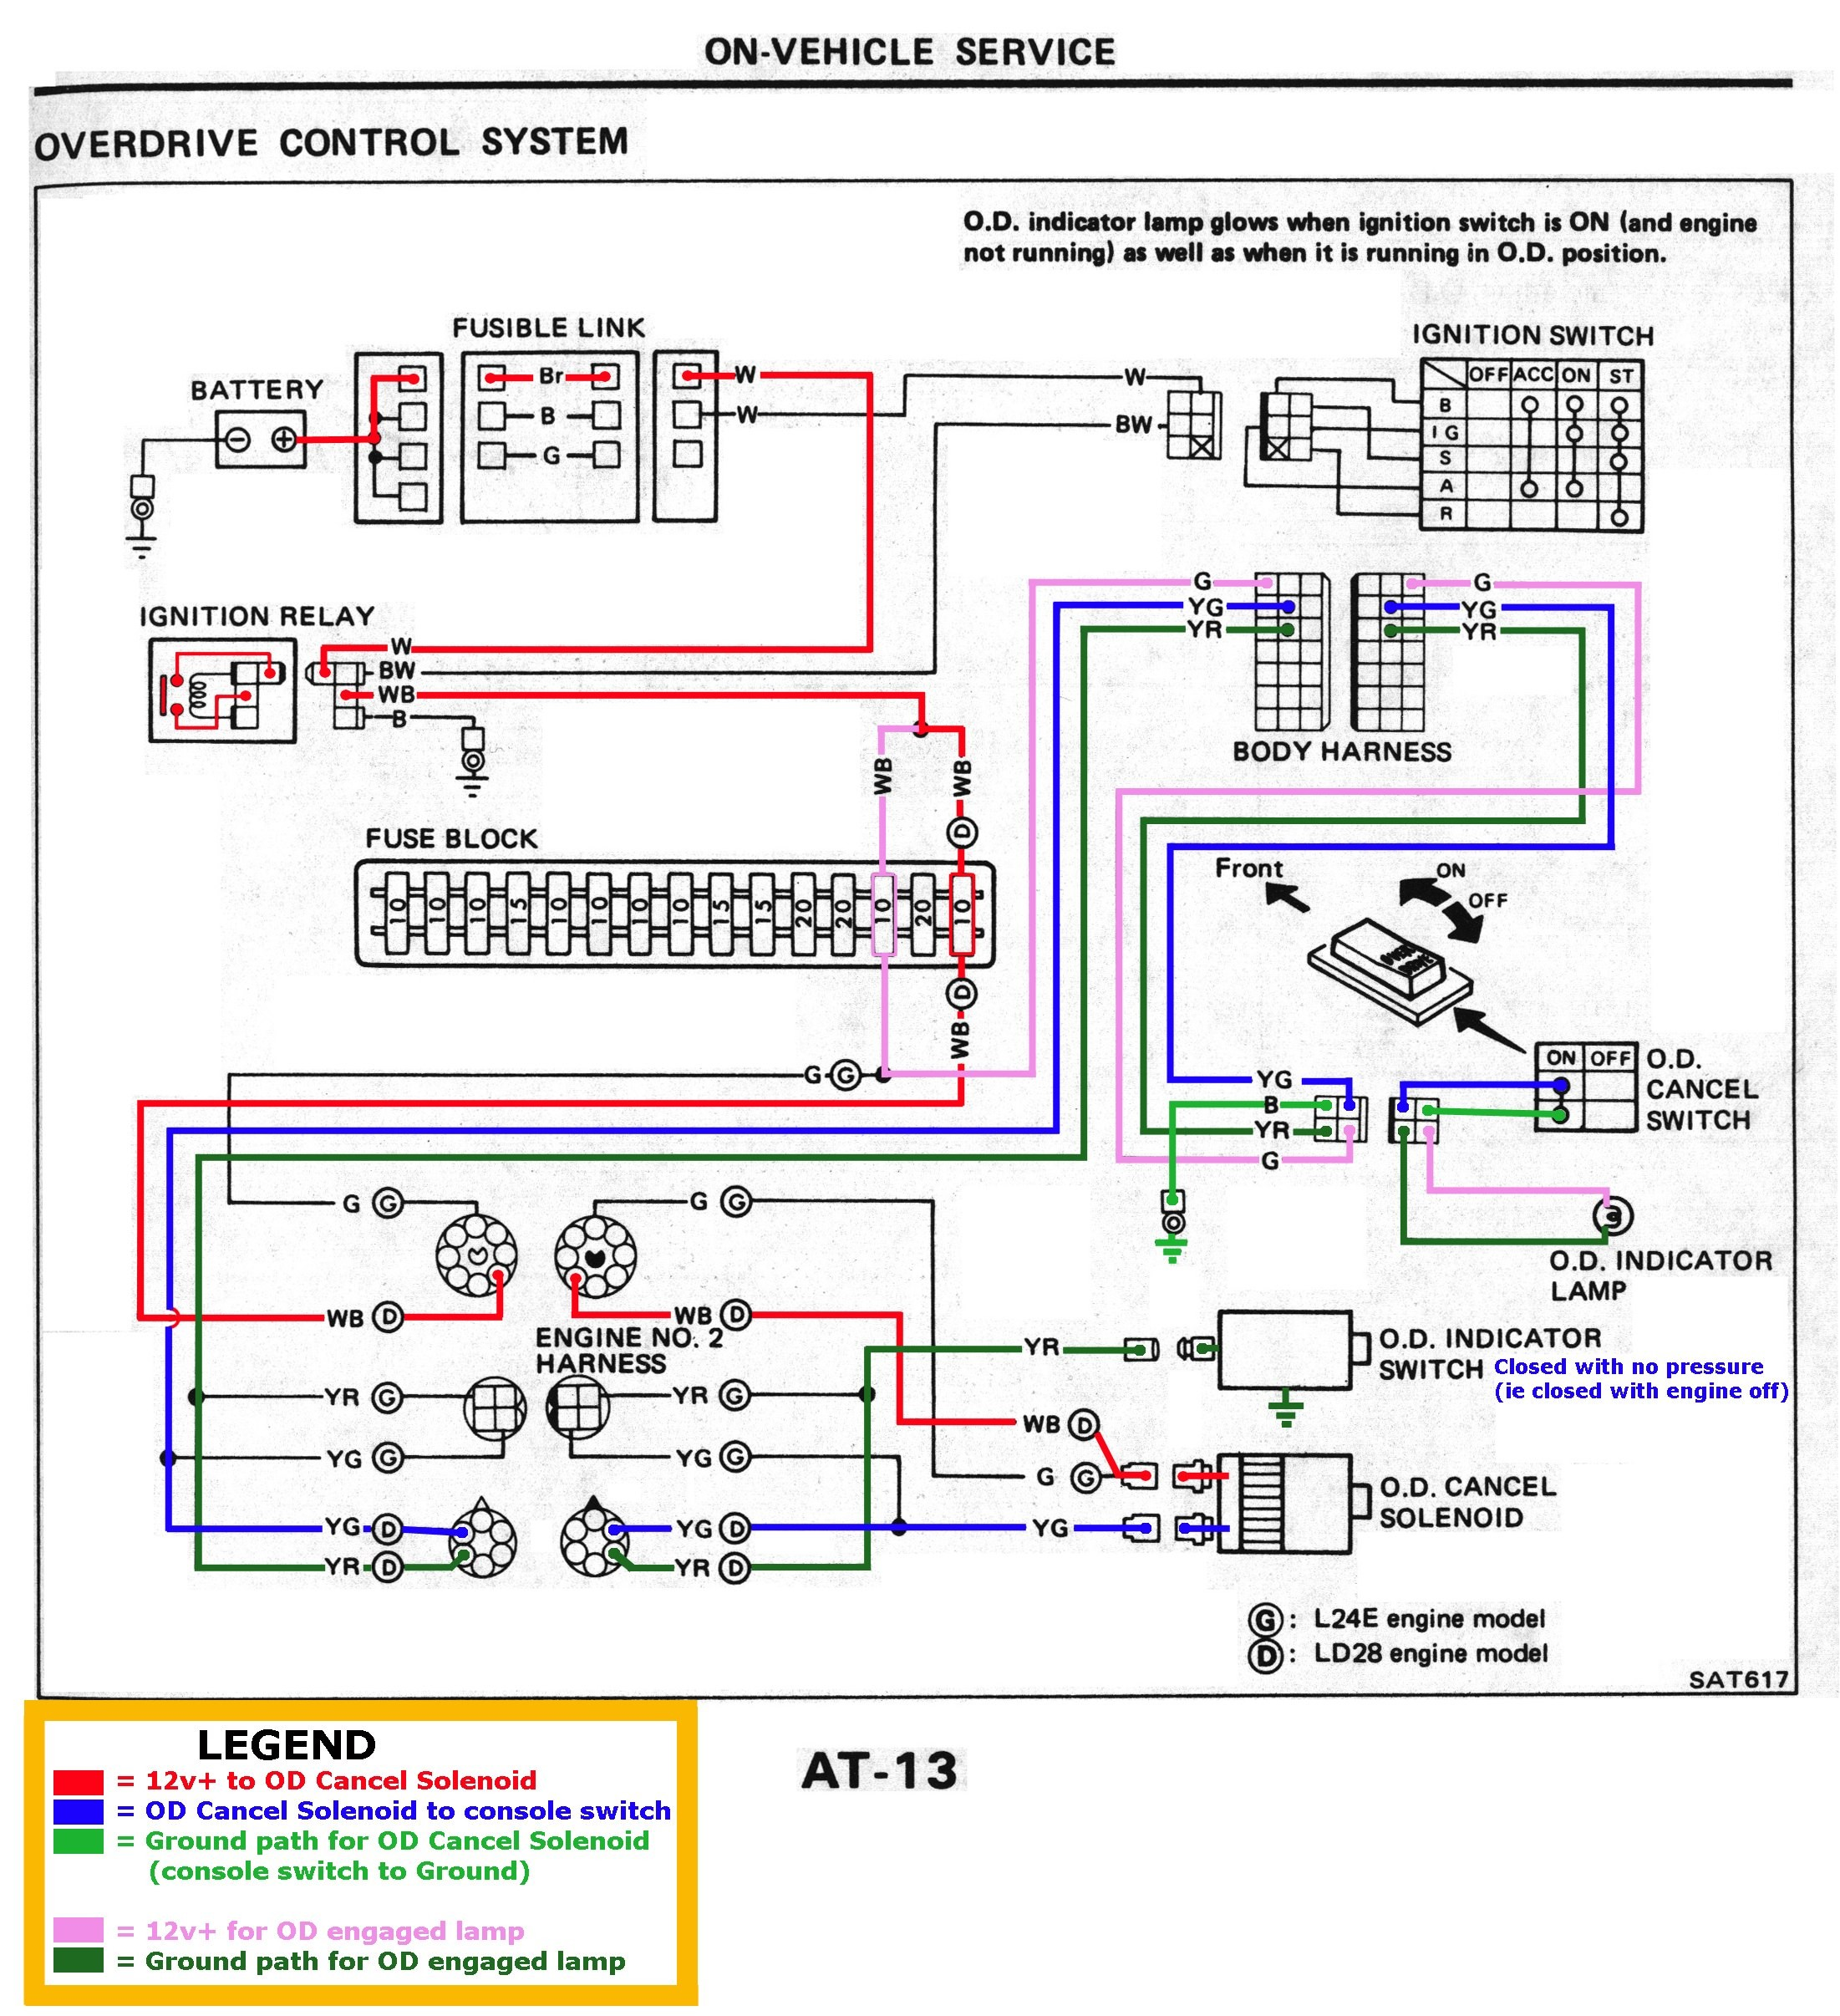 Automatic Transmission Schematic Diagram Nissandiesel forums • View topic L4n71b Od at 1983 84 Of Automatic Transmission Schematic Diagram